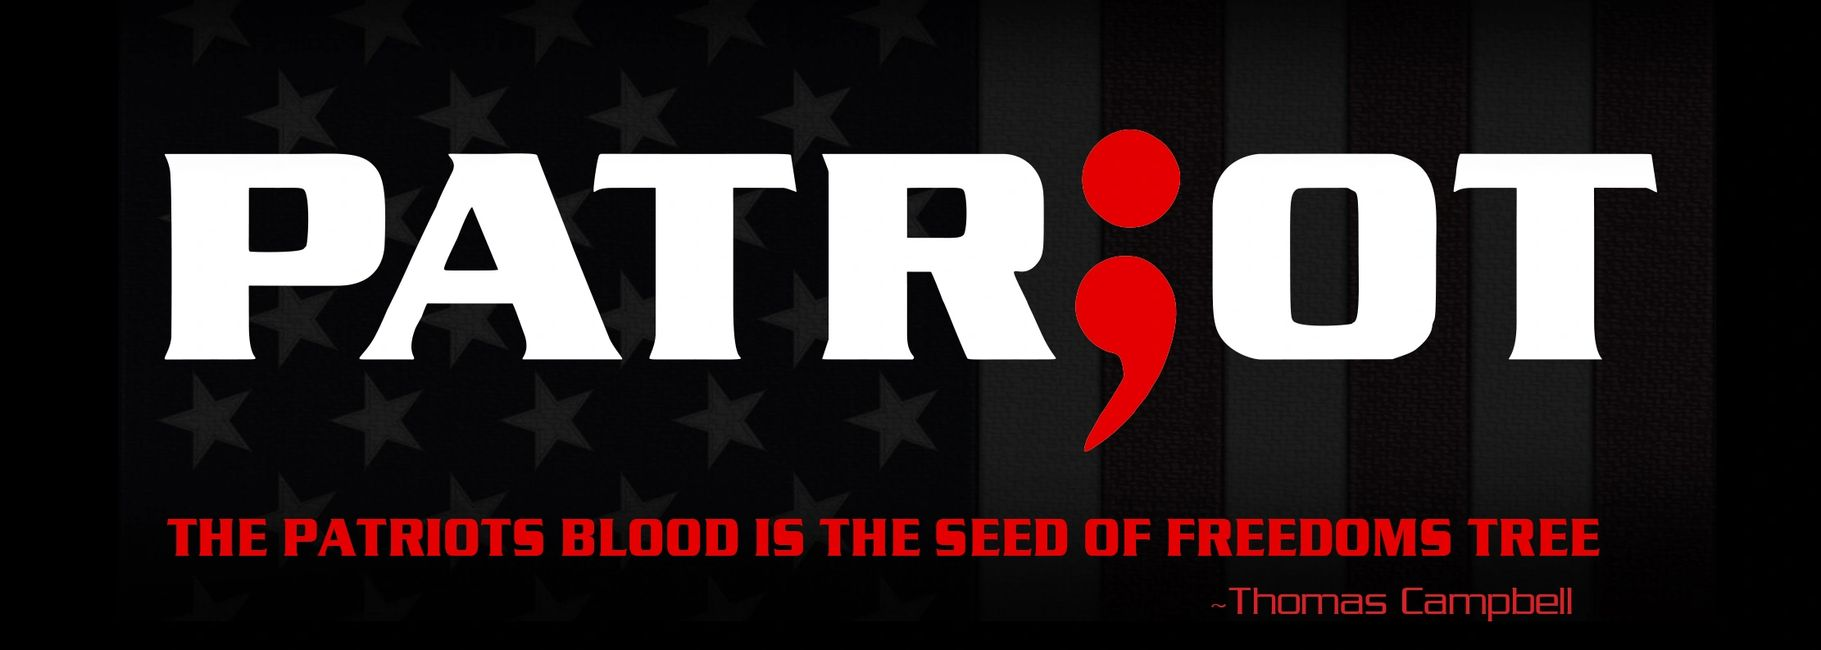 Patriots blood is the seed of freedoms tree.